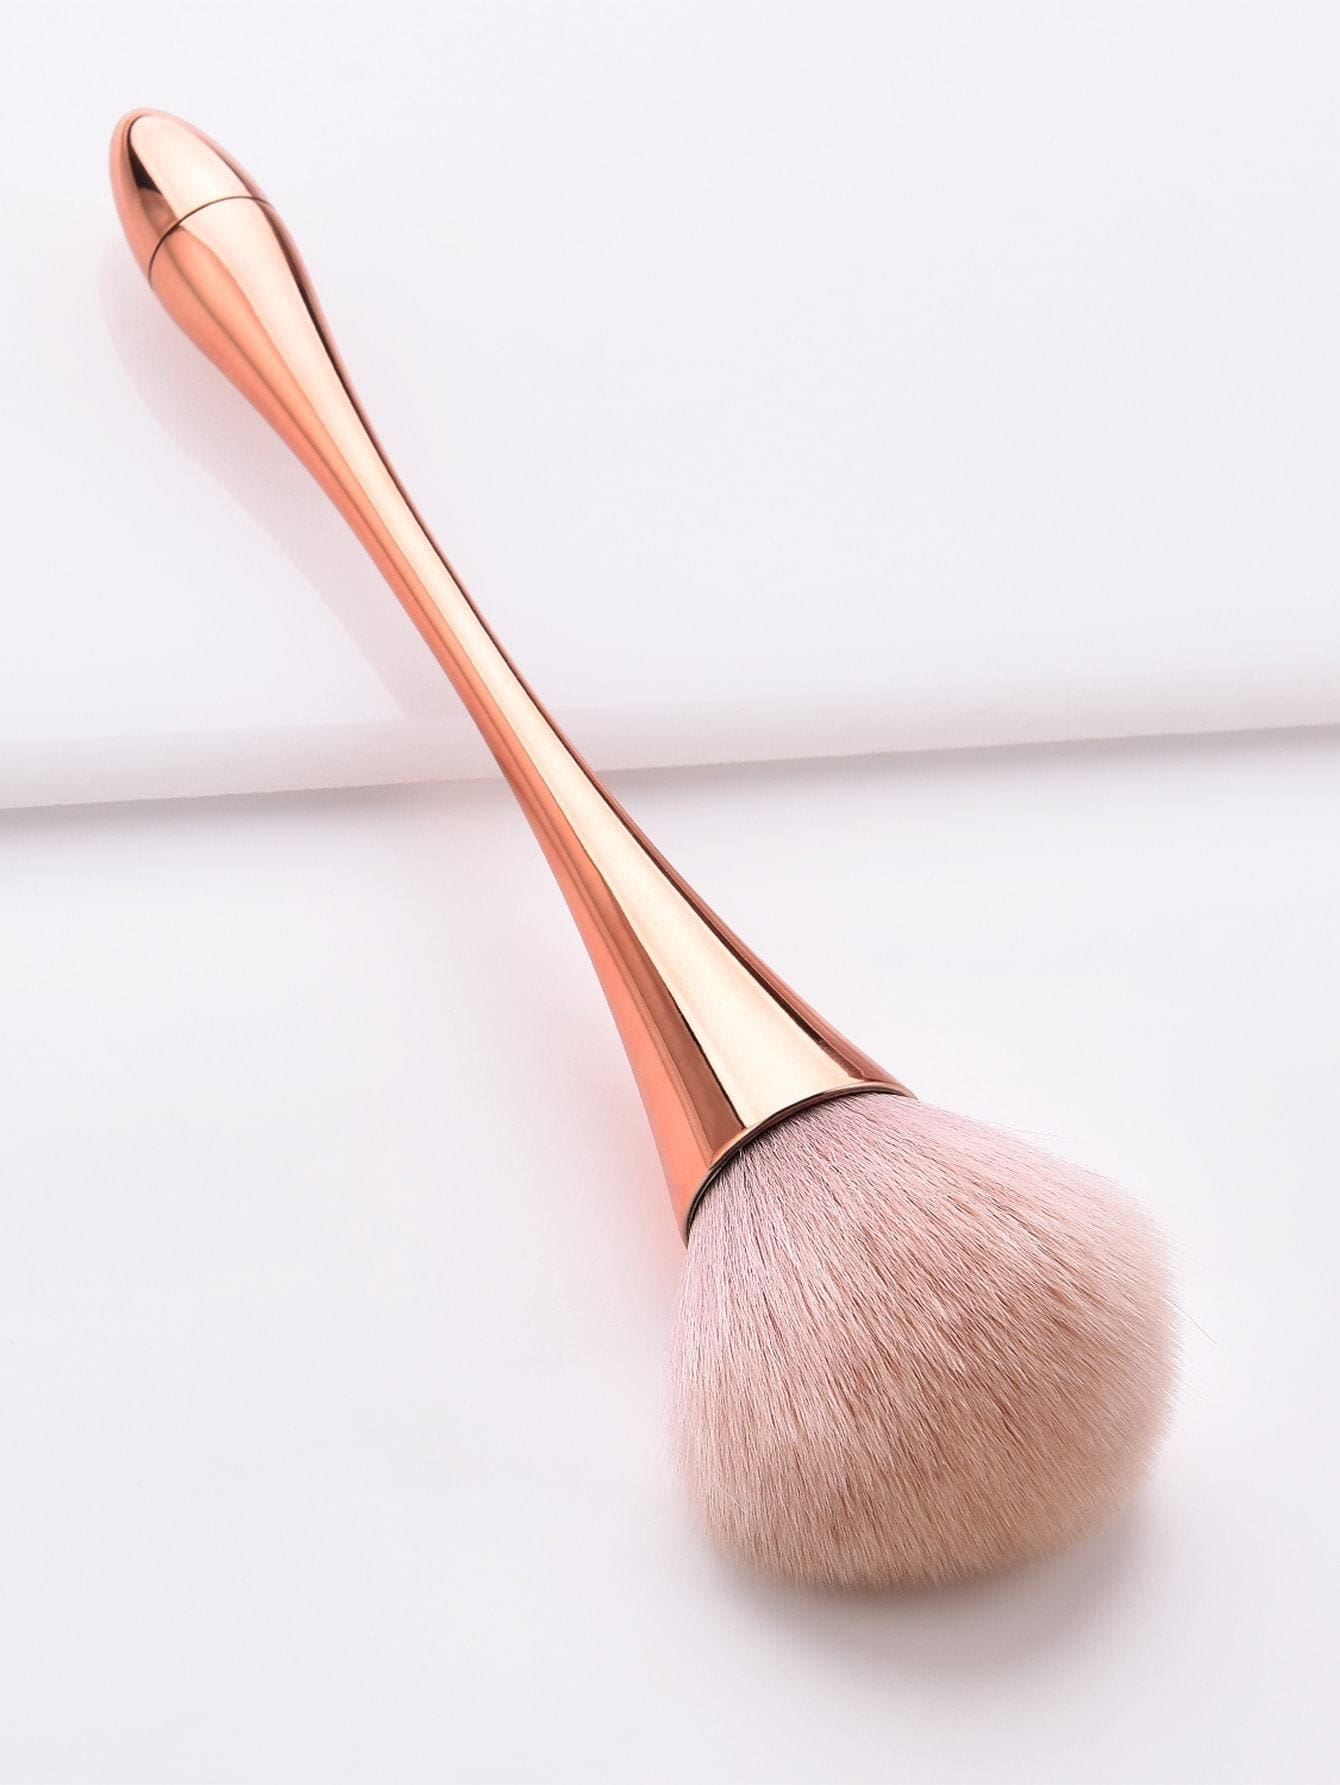 Metallic Handle Powder Brush 1pc - Makeup Brushes